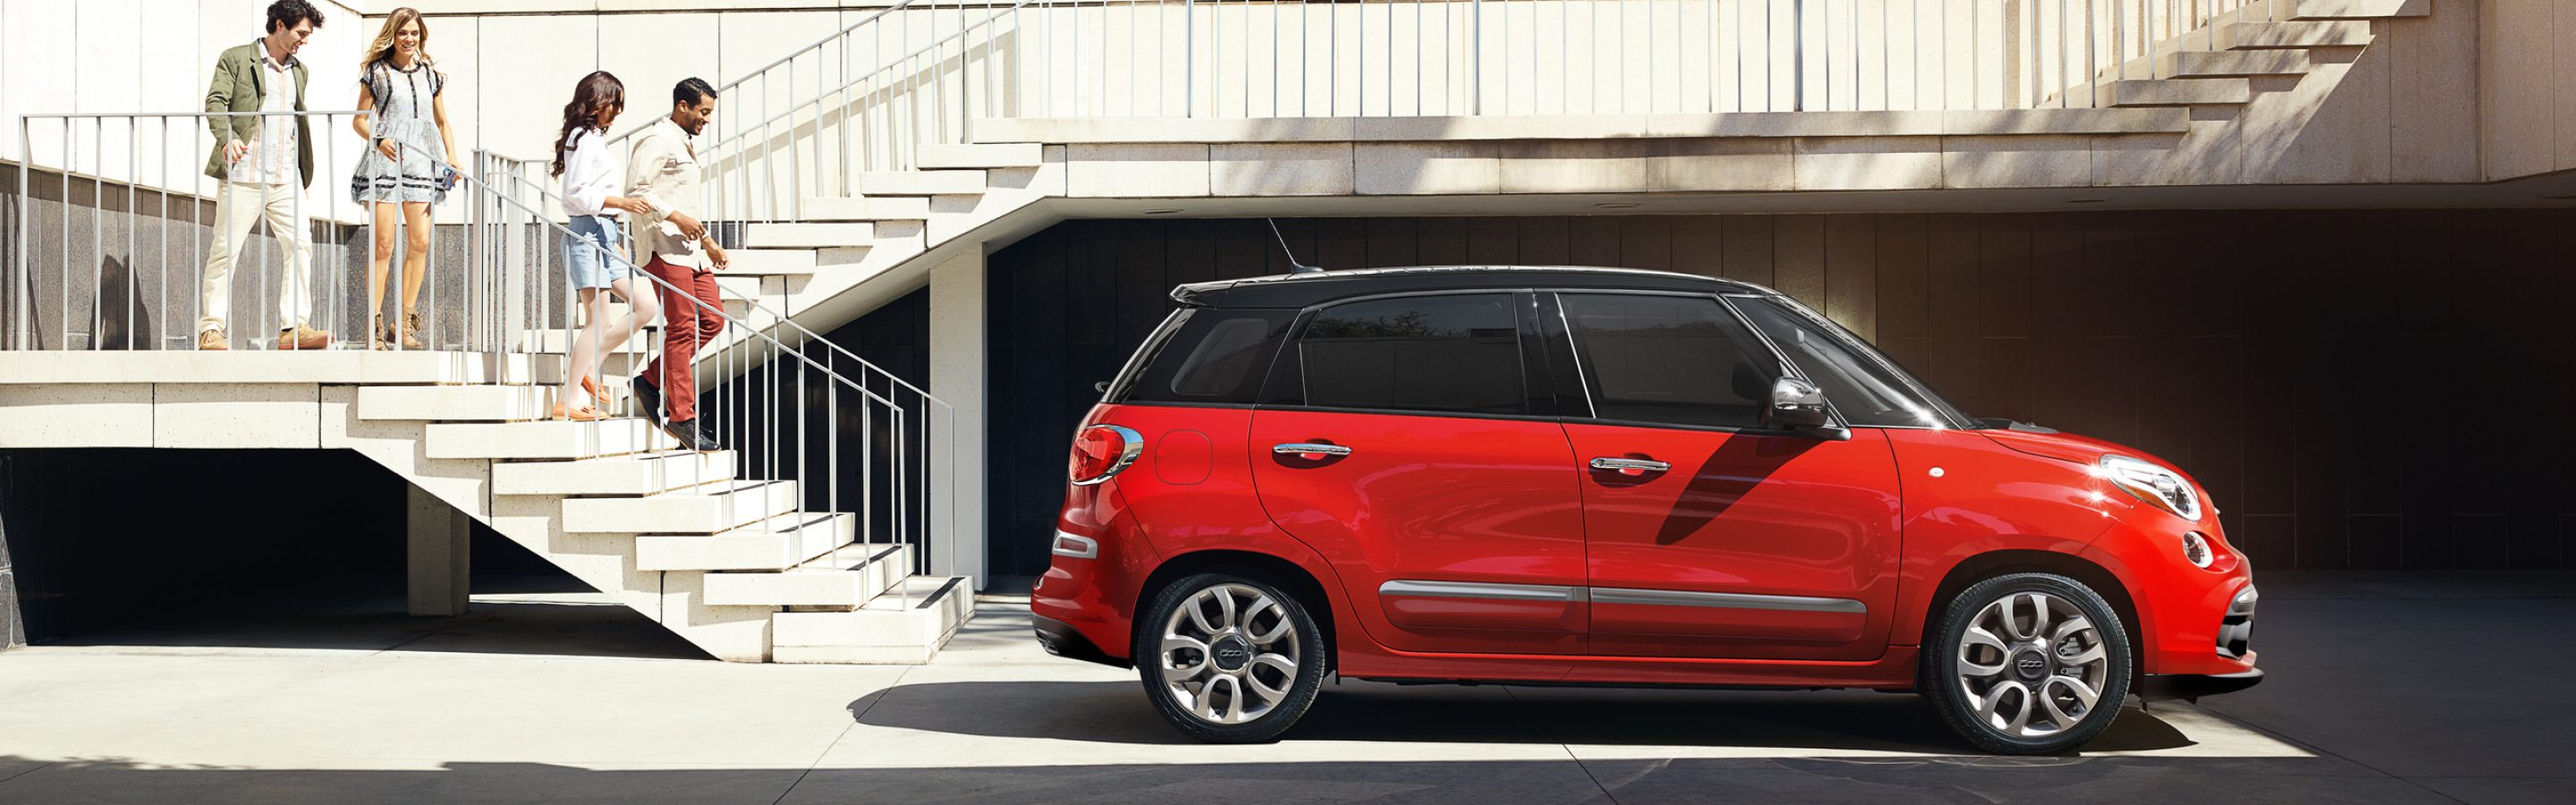 FIAT L Functionality With A Personality - Fiat 500l release date